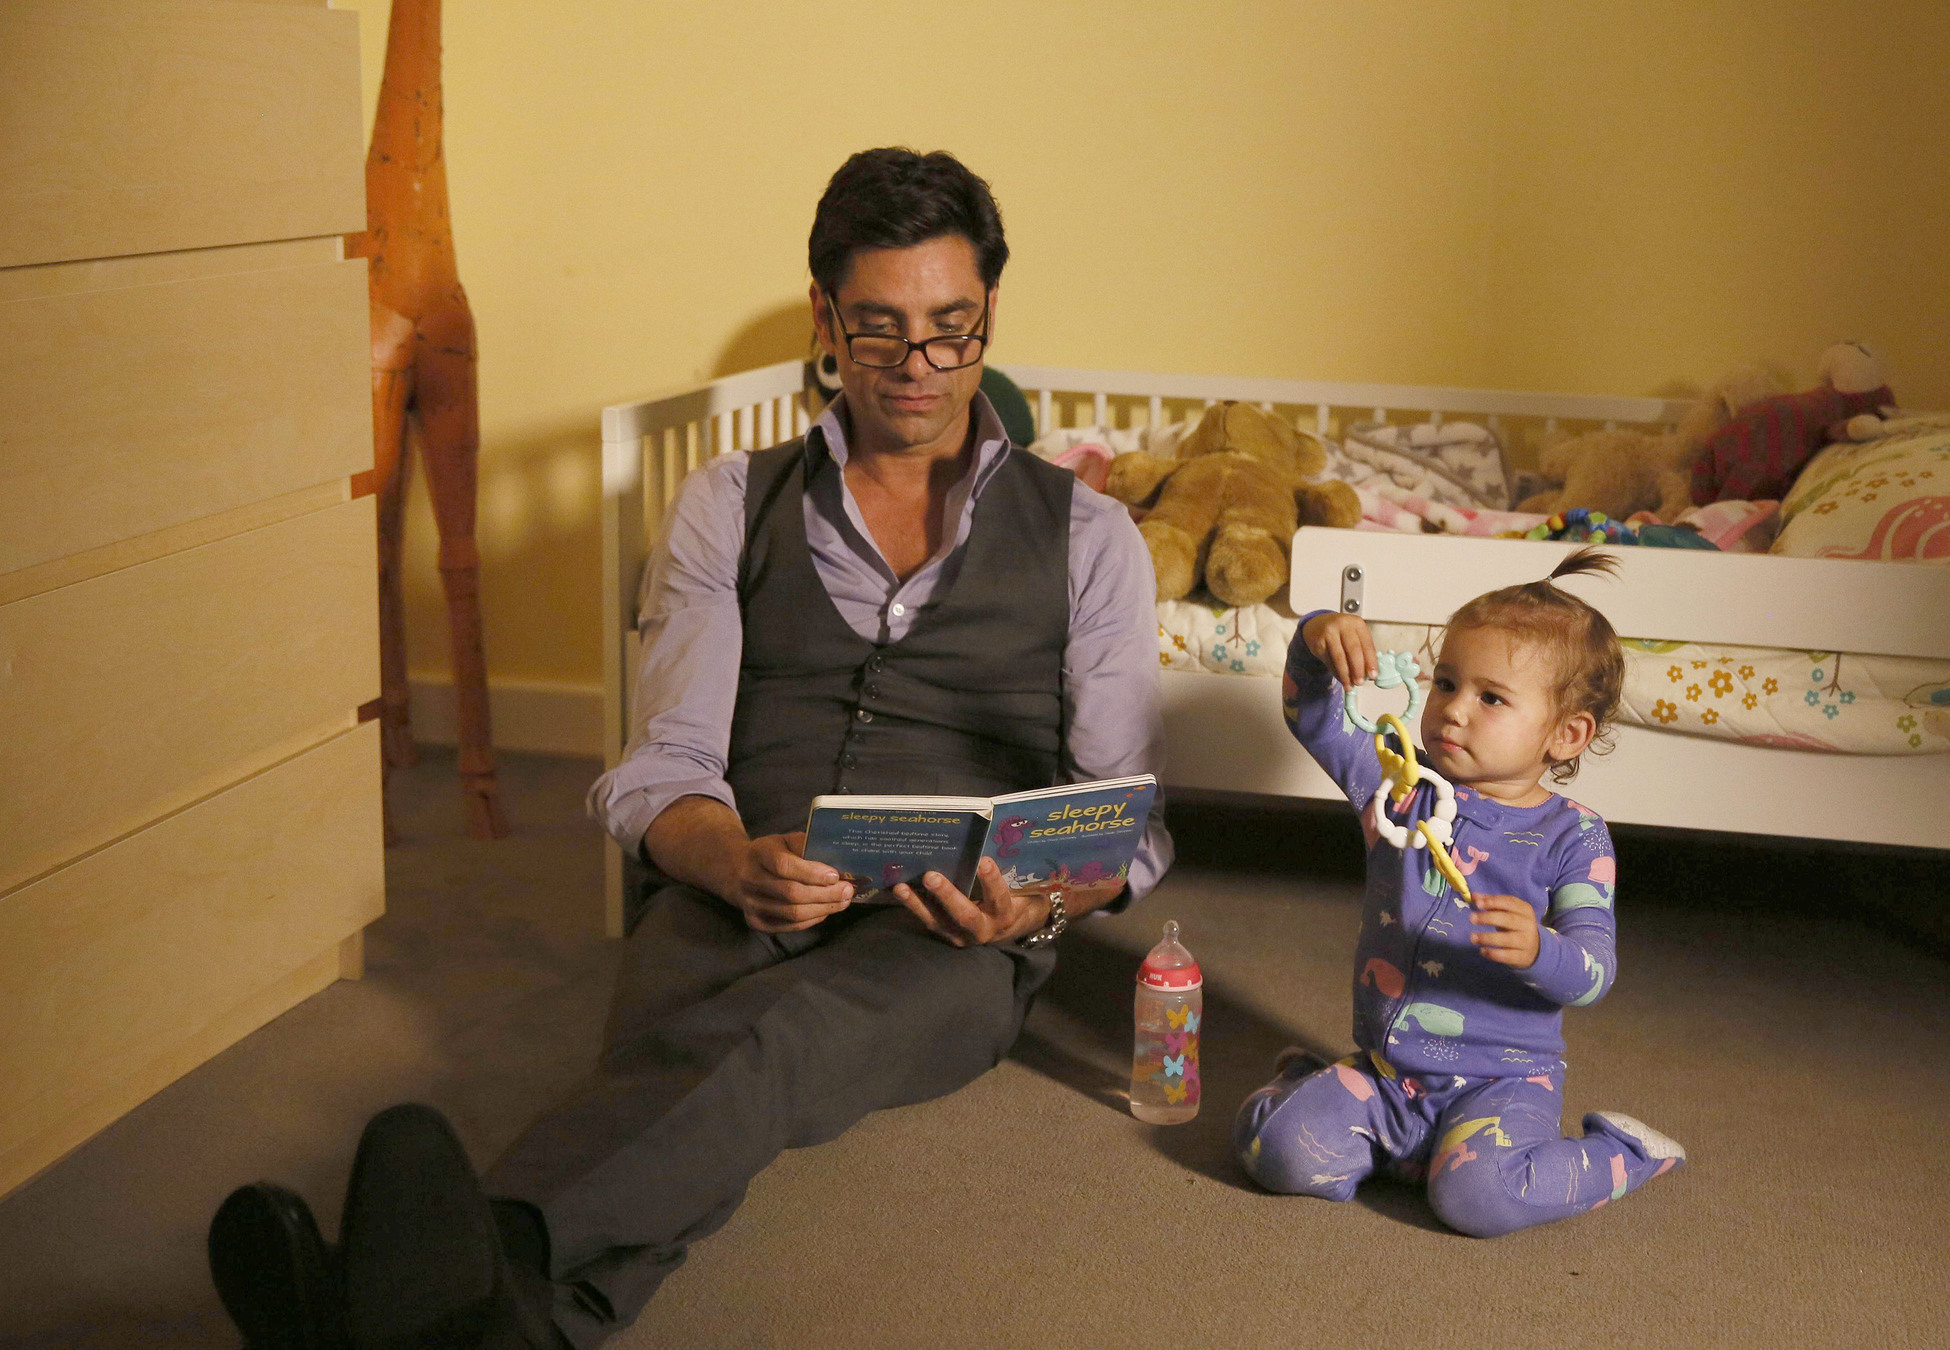 John Stamos - Grandfathered